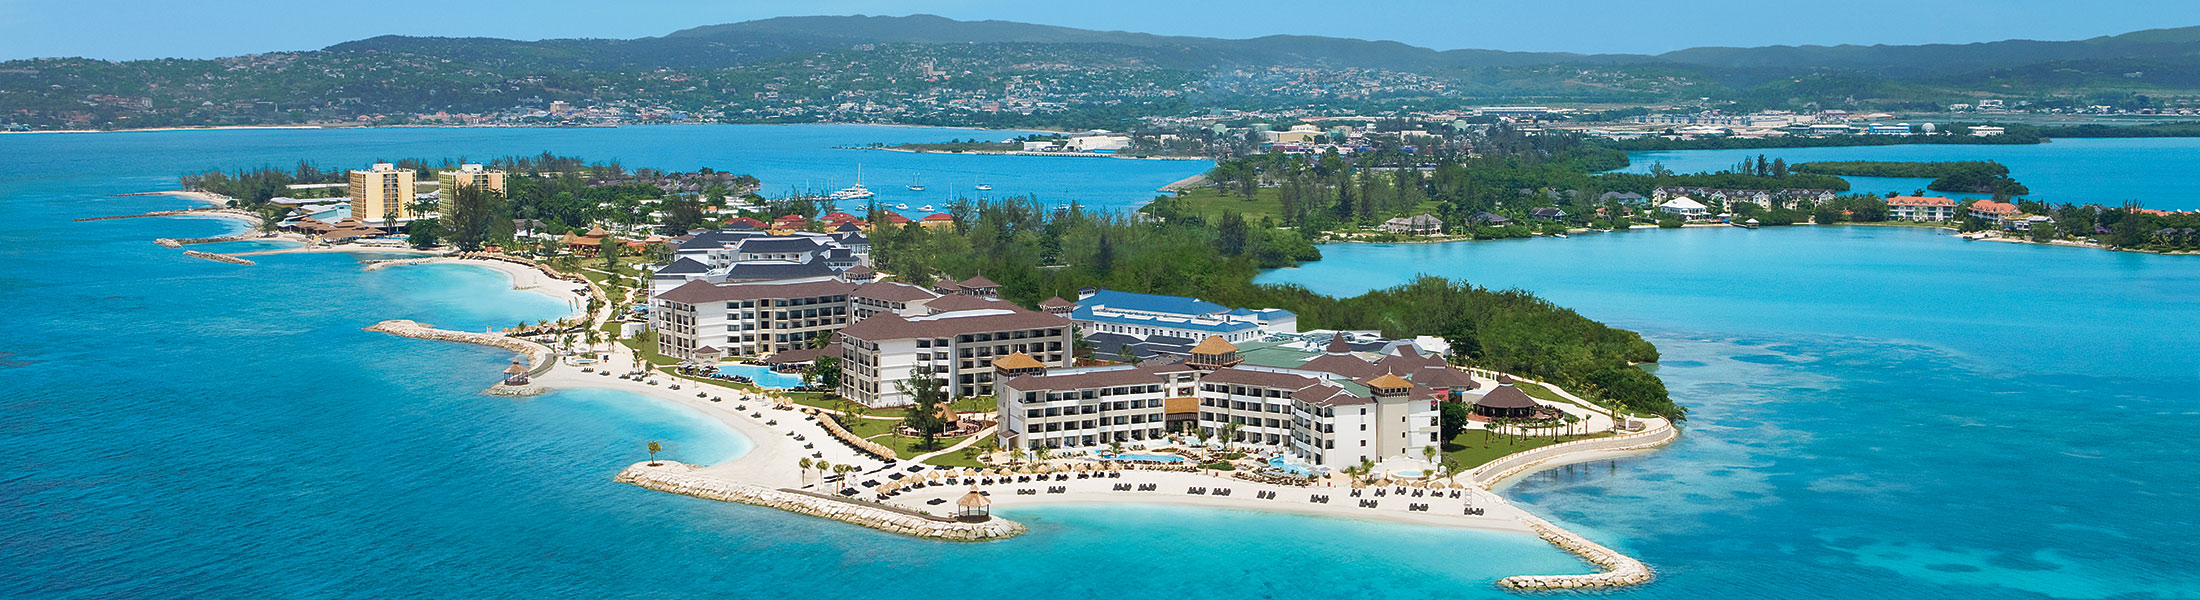 Resort Aerial photo of the Secrets Wild Orchid Montego Bay